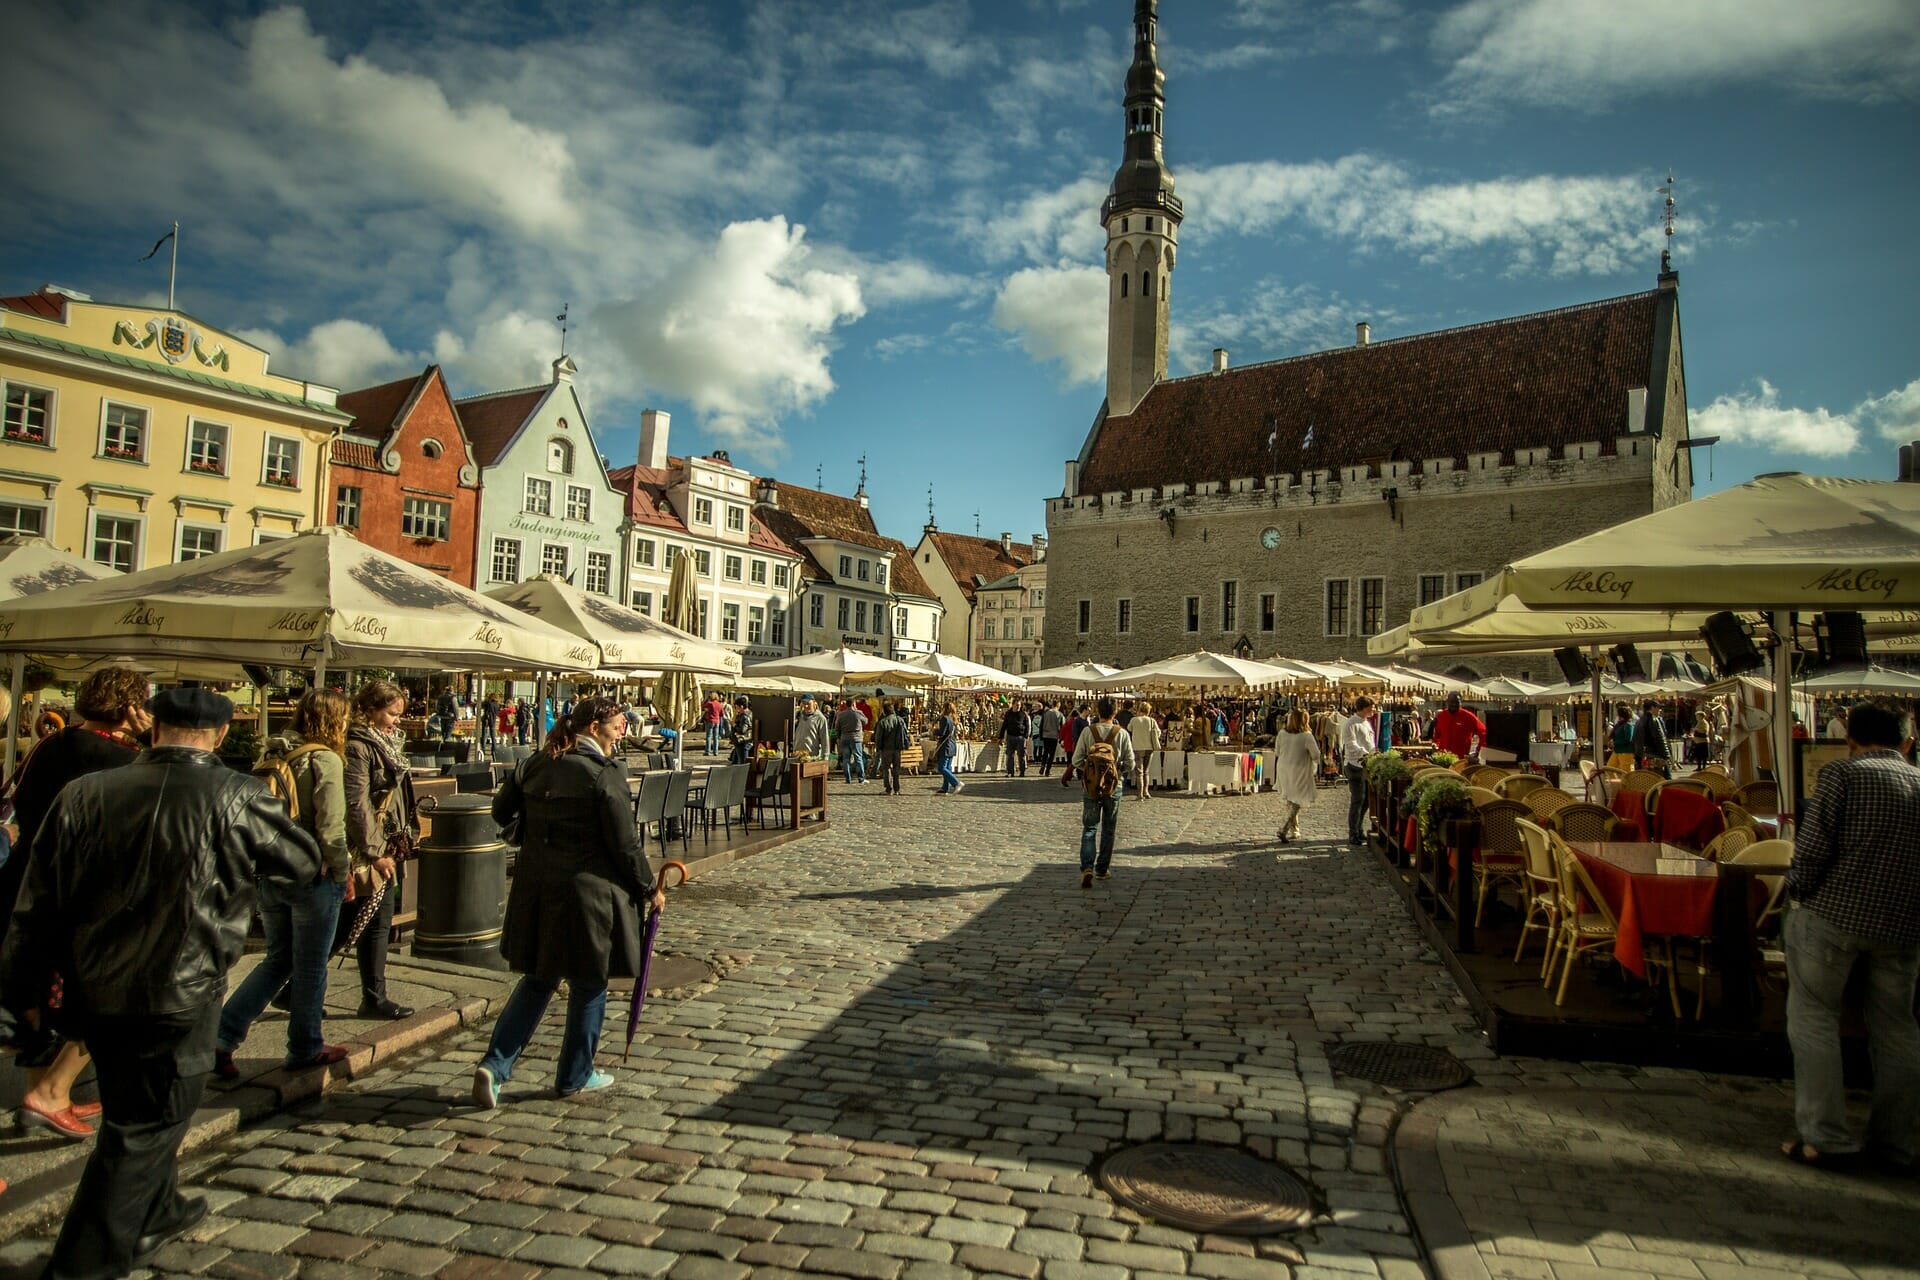 Hustle and bustle of the Tallinn town square with a church in the background